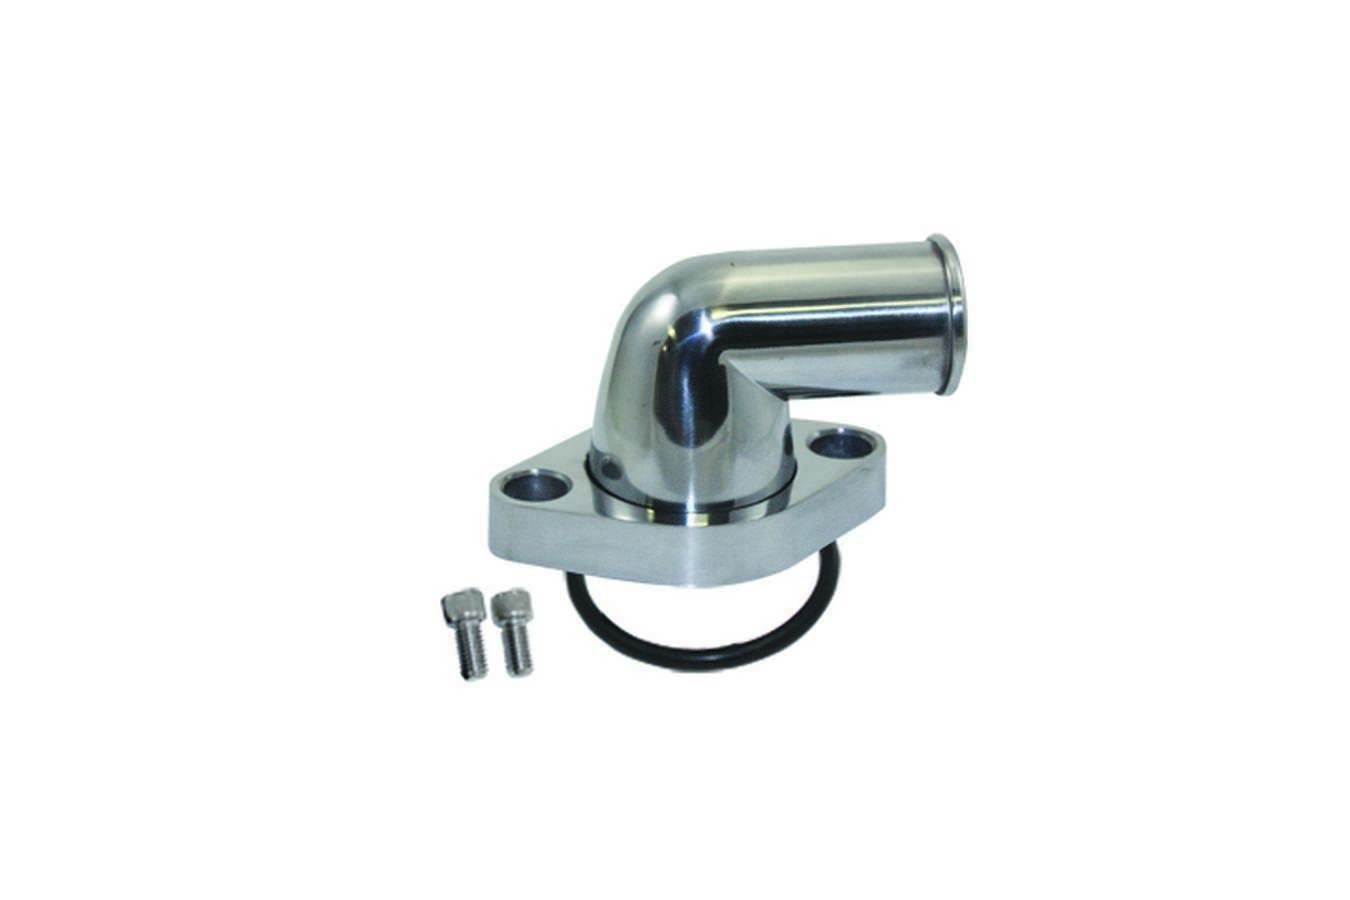 Specialty Products 8456 Water Neck, 90 Degree, 1-1/2 in ID Hose, Swivel, O-Ring, Hardware Included, Aluminum, Polished, Chevy V8, Each